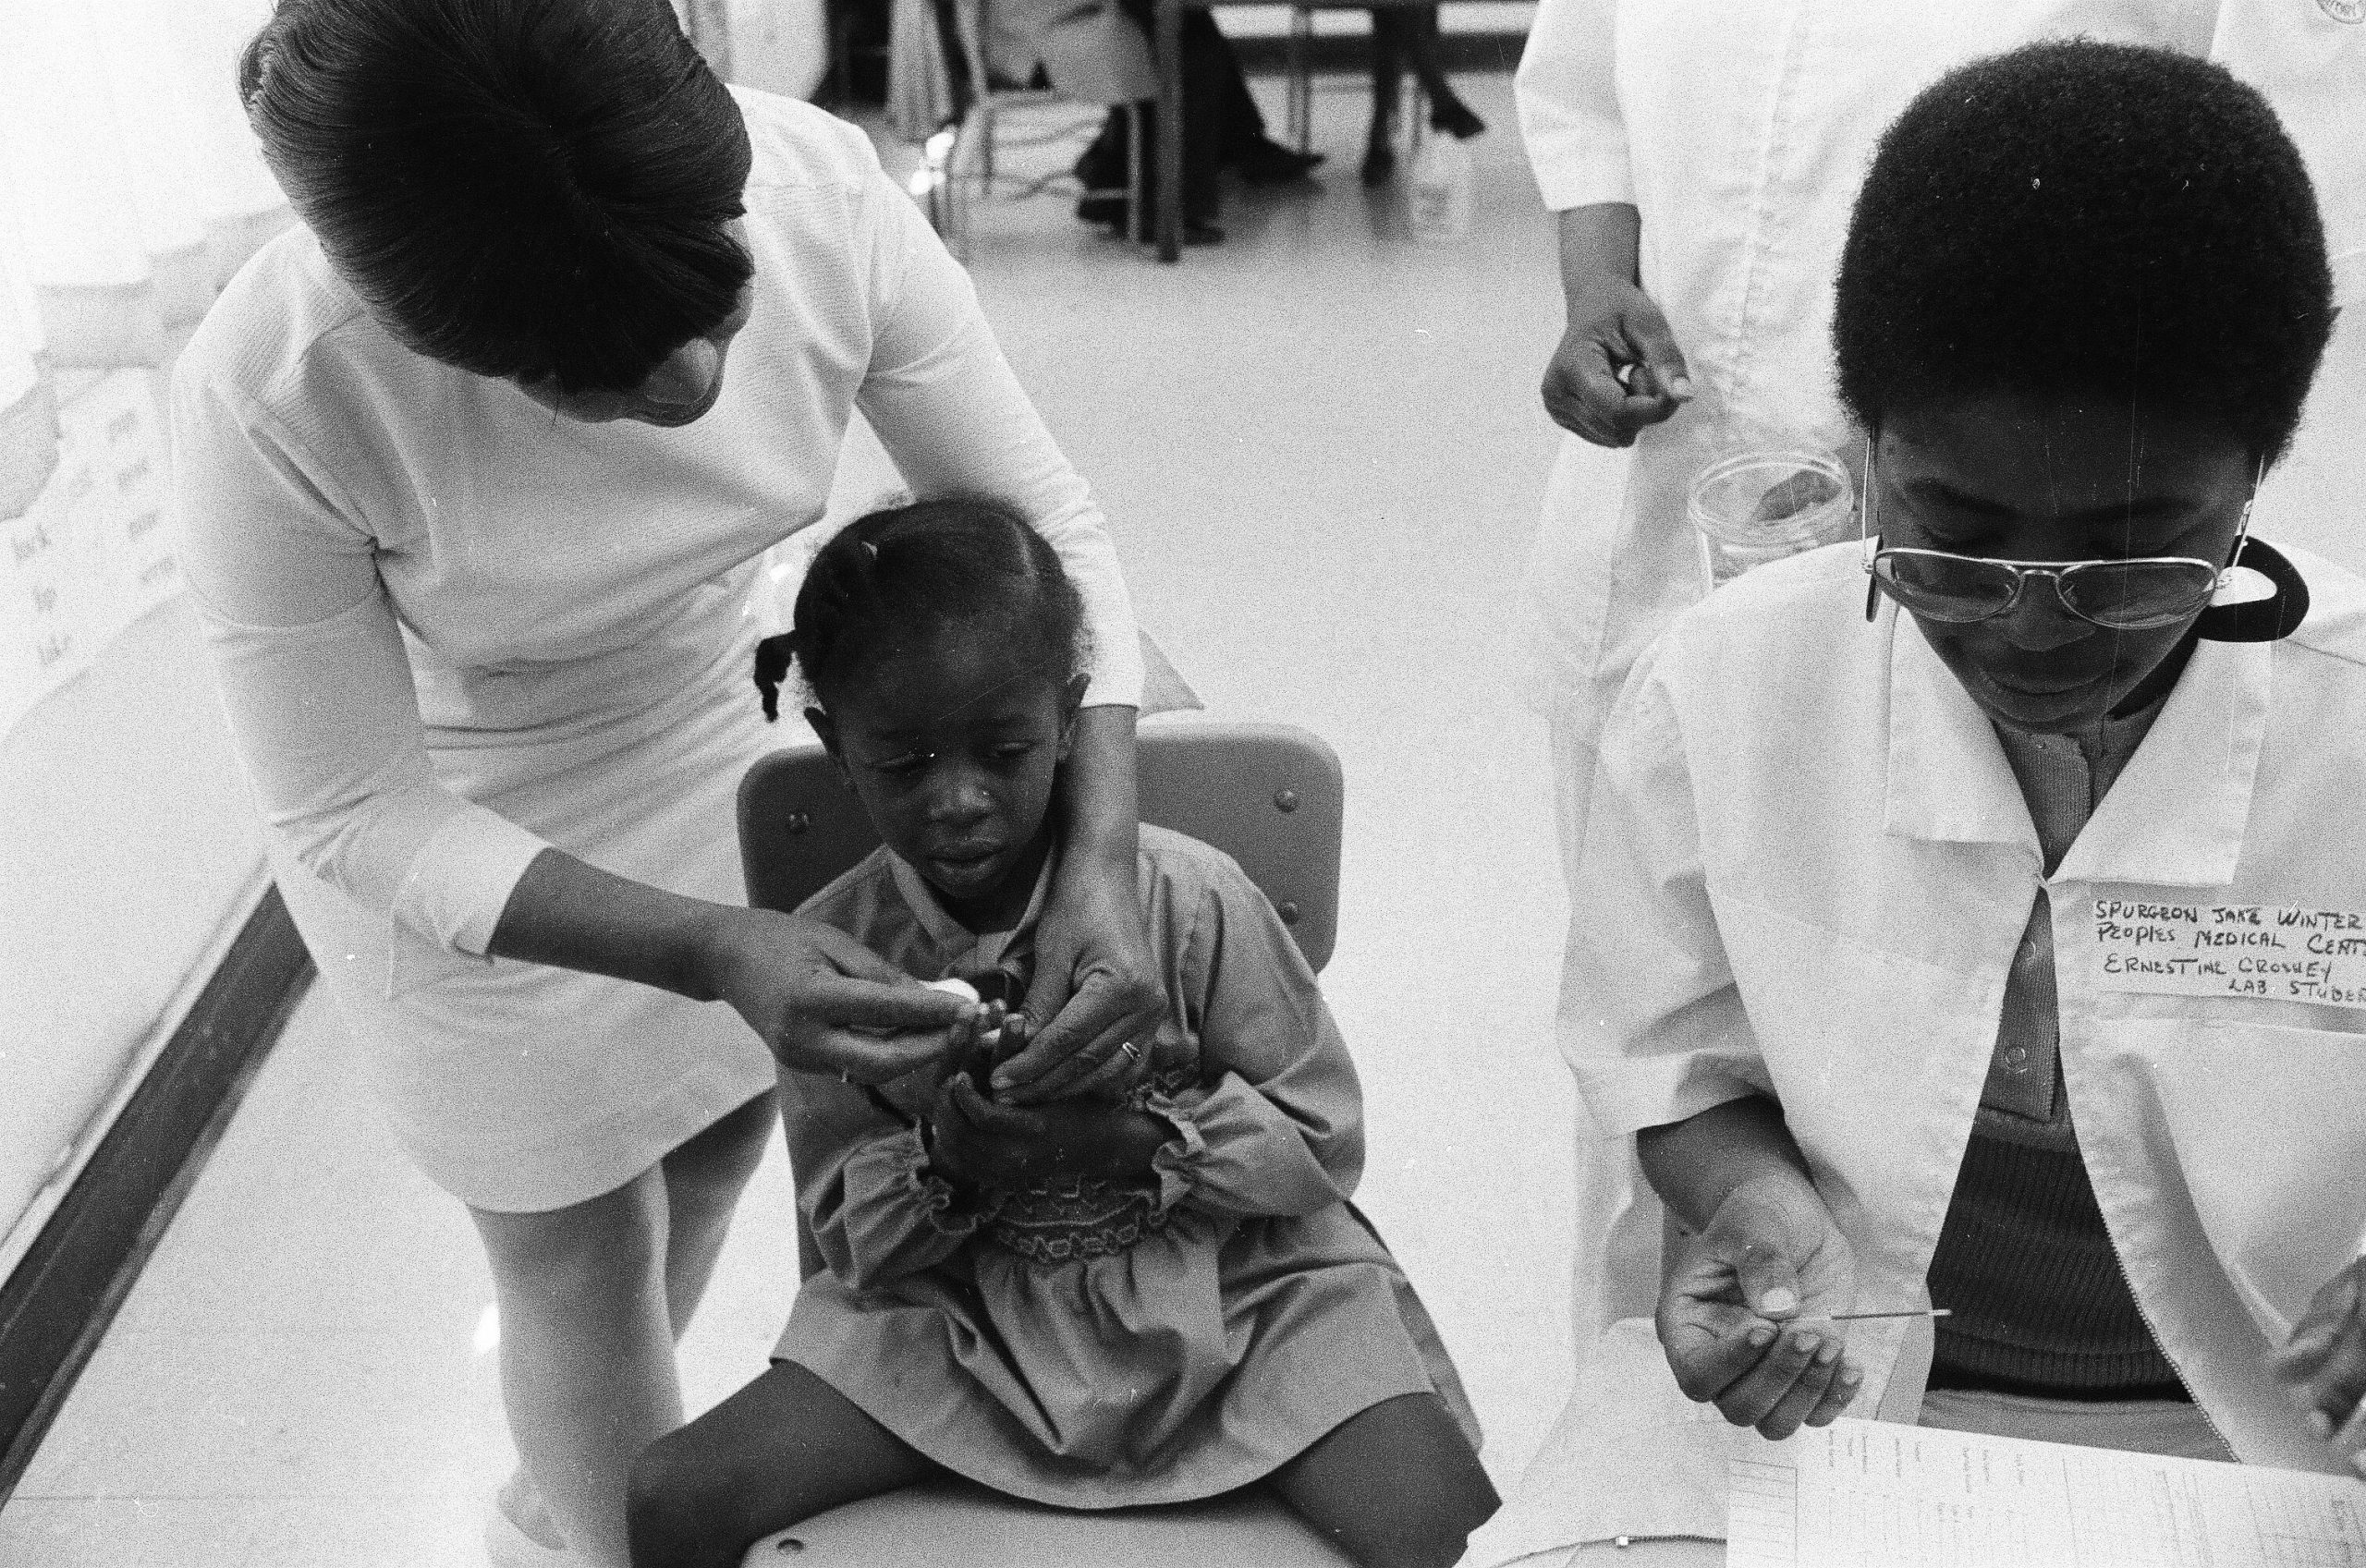 Black Panthers aid in sickle-cell anemia testing for children at Penn Elementary School in North Lawndale in 1971.